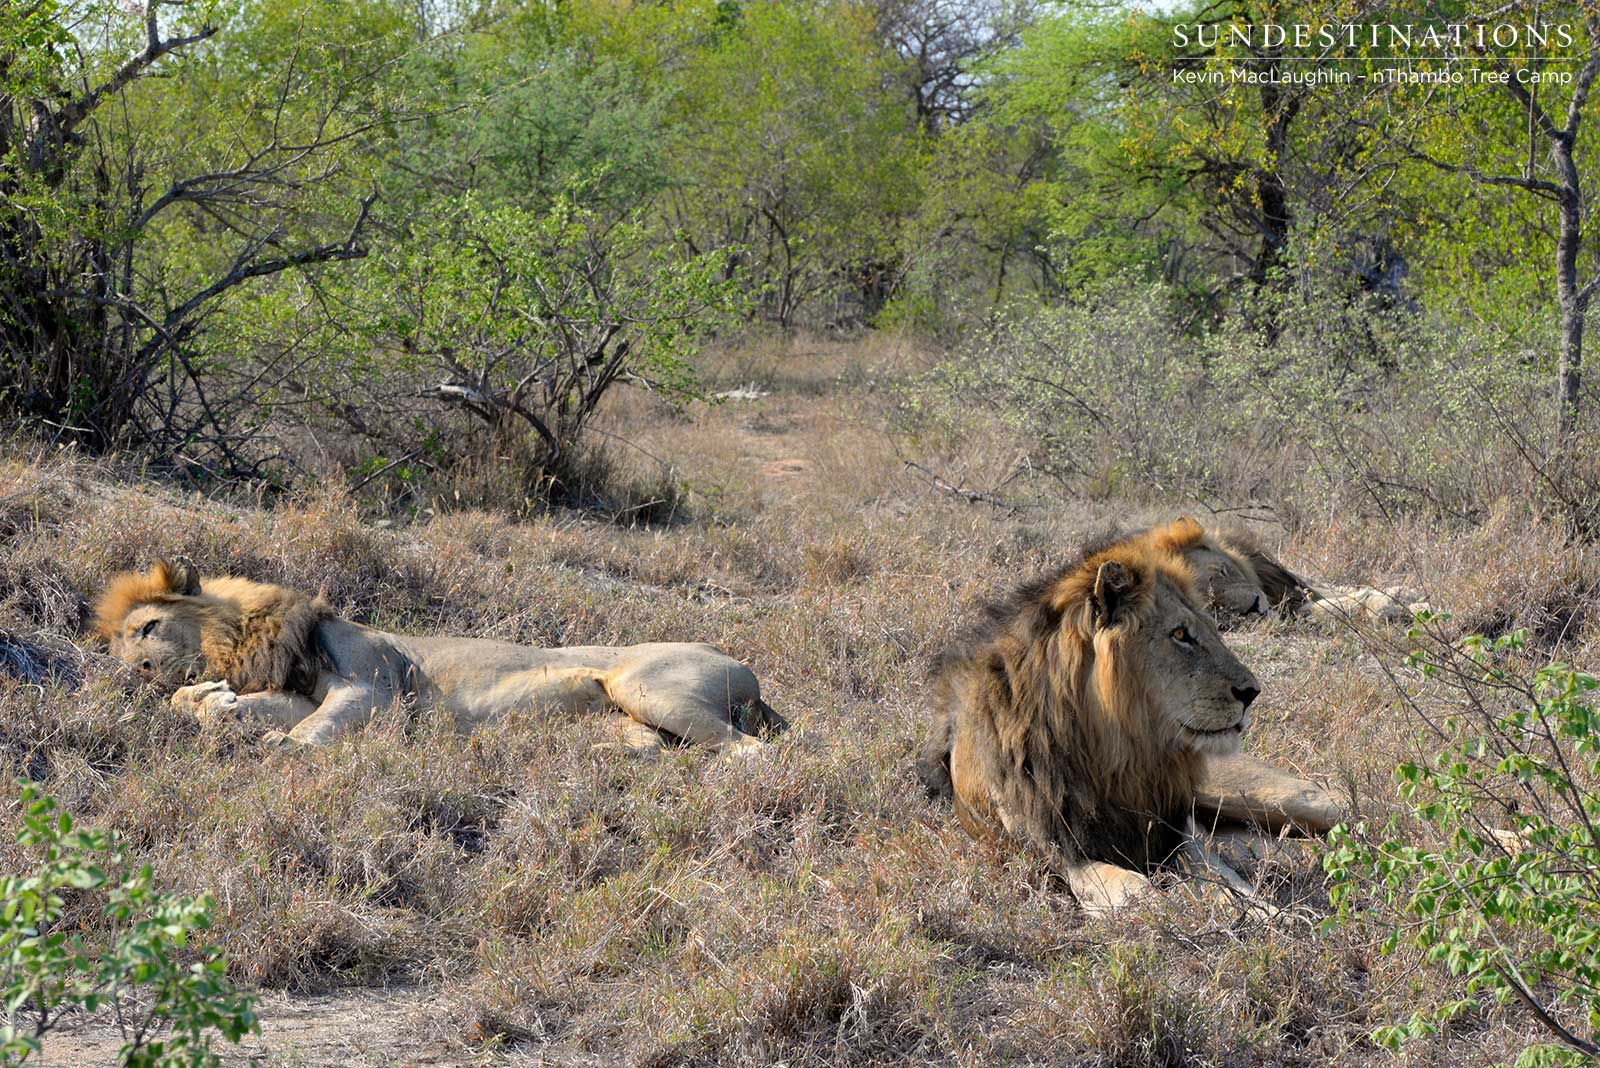 Three's a crowd: Trilogy male lions seen together again